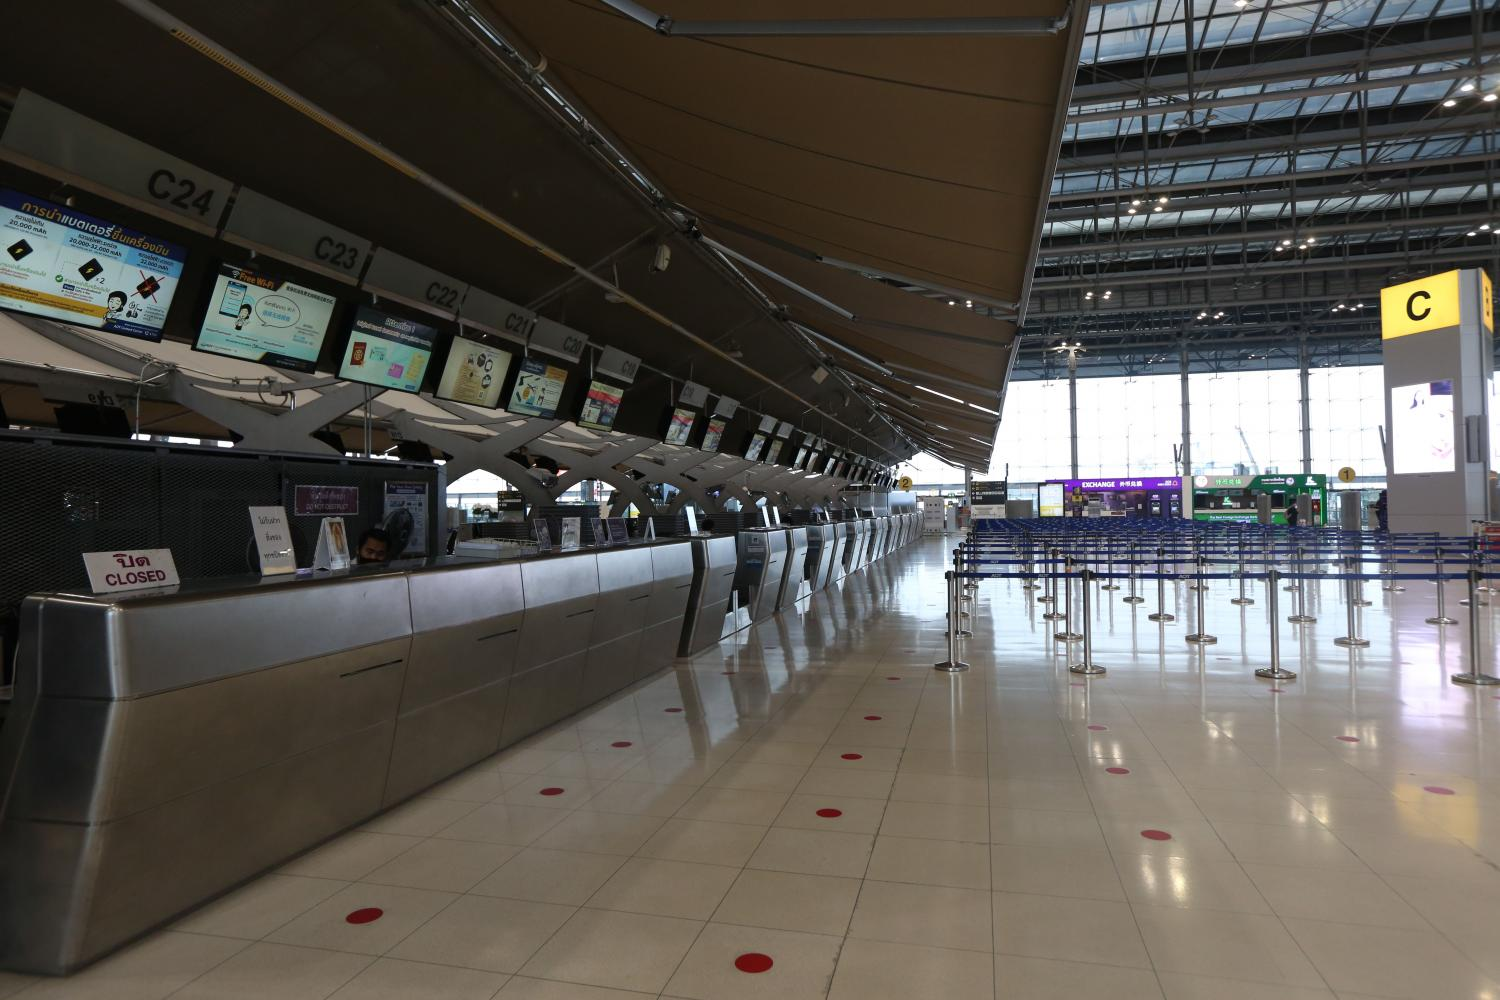 Suvarnabhumi airport is nearly empty amid the Covid-19 pandemic. Tour business operators have faced difficulties for nearly a year due to the international travel restrictions.(Photo by Varuth Hirunyatheb)